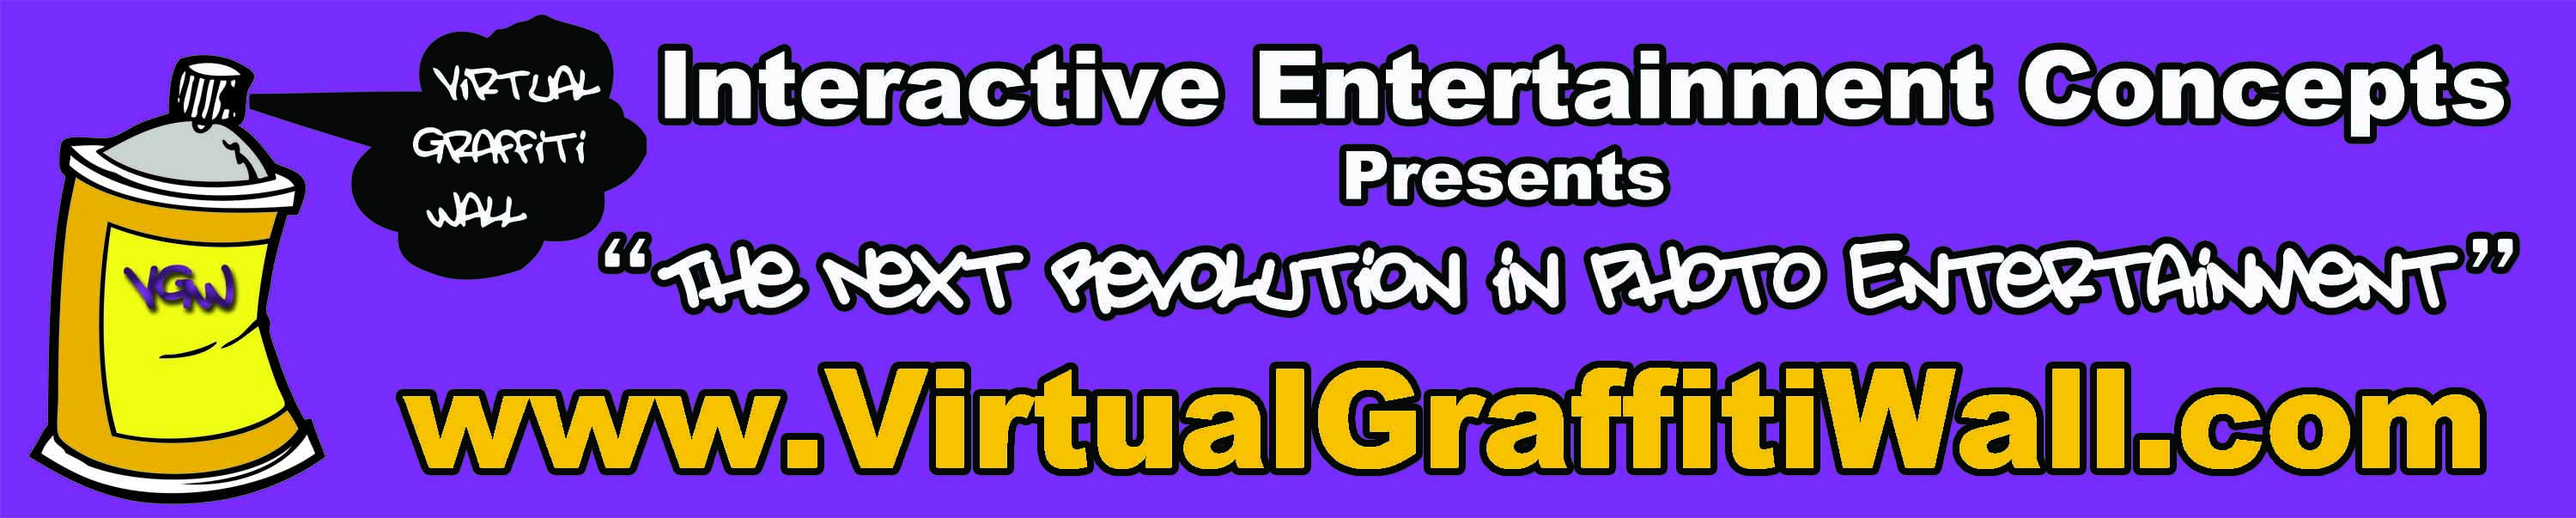 Virtual Graffiti Wall - The Next Revolution in Photo Entetainment